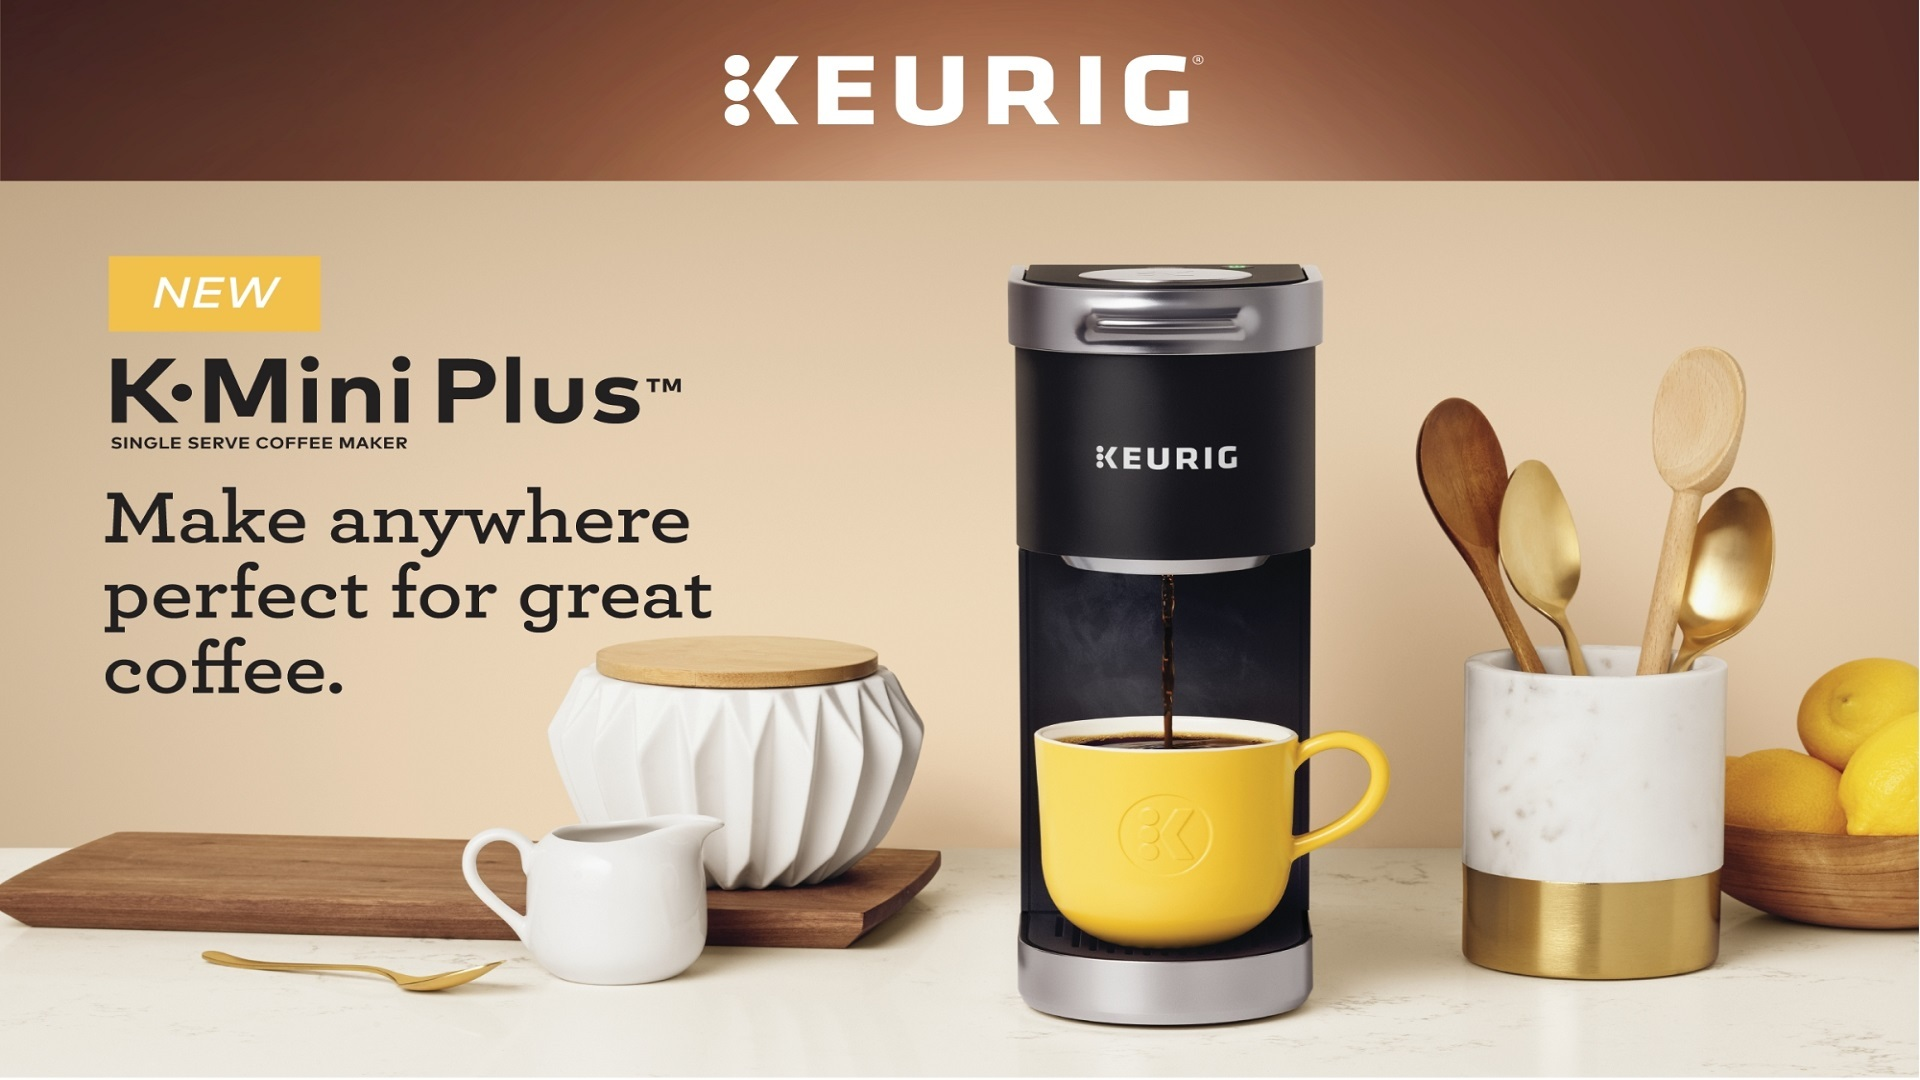 Keurig k mini plus single serve coffee maker